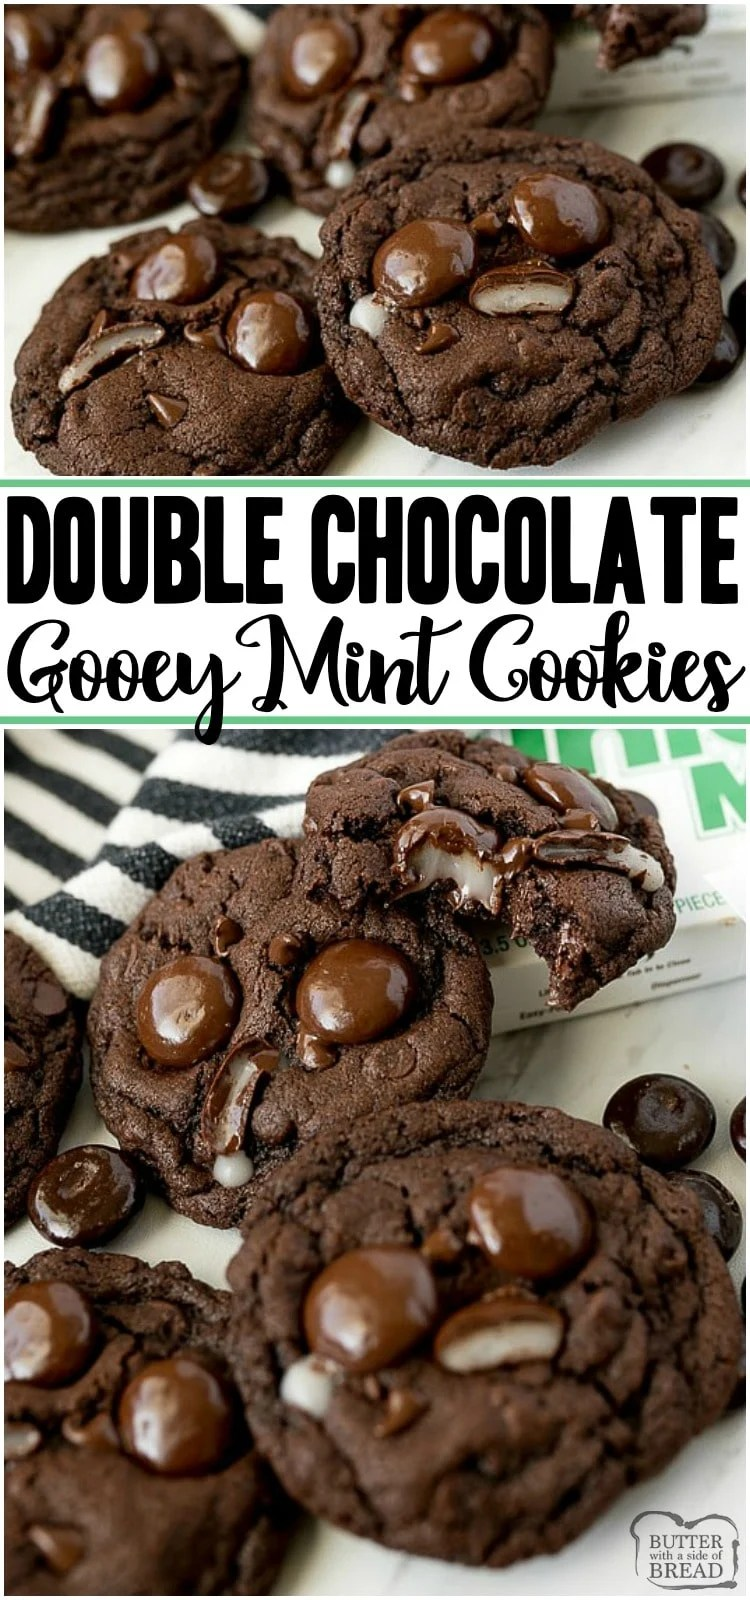 Double Chocolate Mint Cookies are a rich, chewy chocolate cookie topped with Junior Mints! Perfect fudge cookie recipe for mint chocolate lovers.  #cookies #mint #chocolate #baking #dessert #chocolatecookies #cookierecipe from BUTTER WITH A SIDE OF BREAD